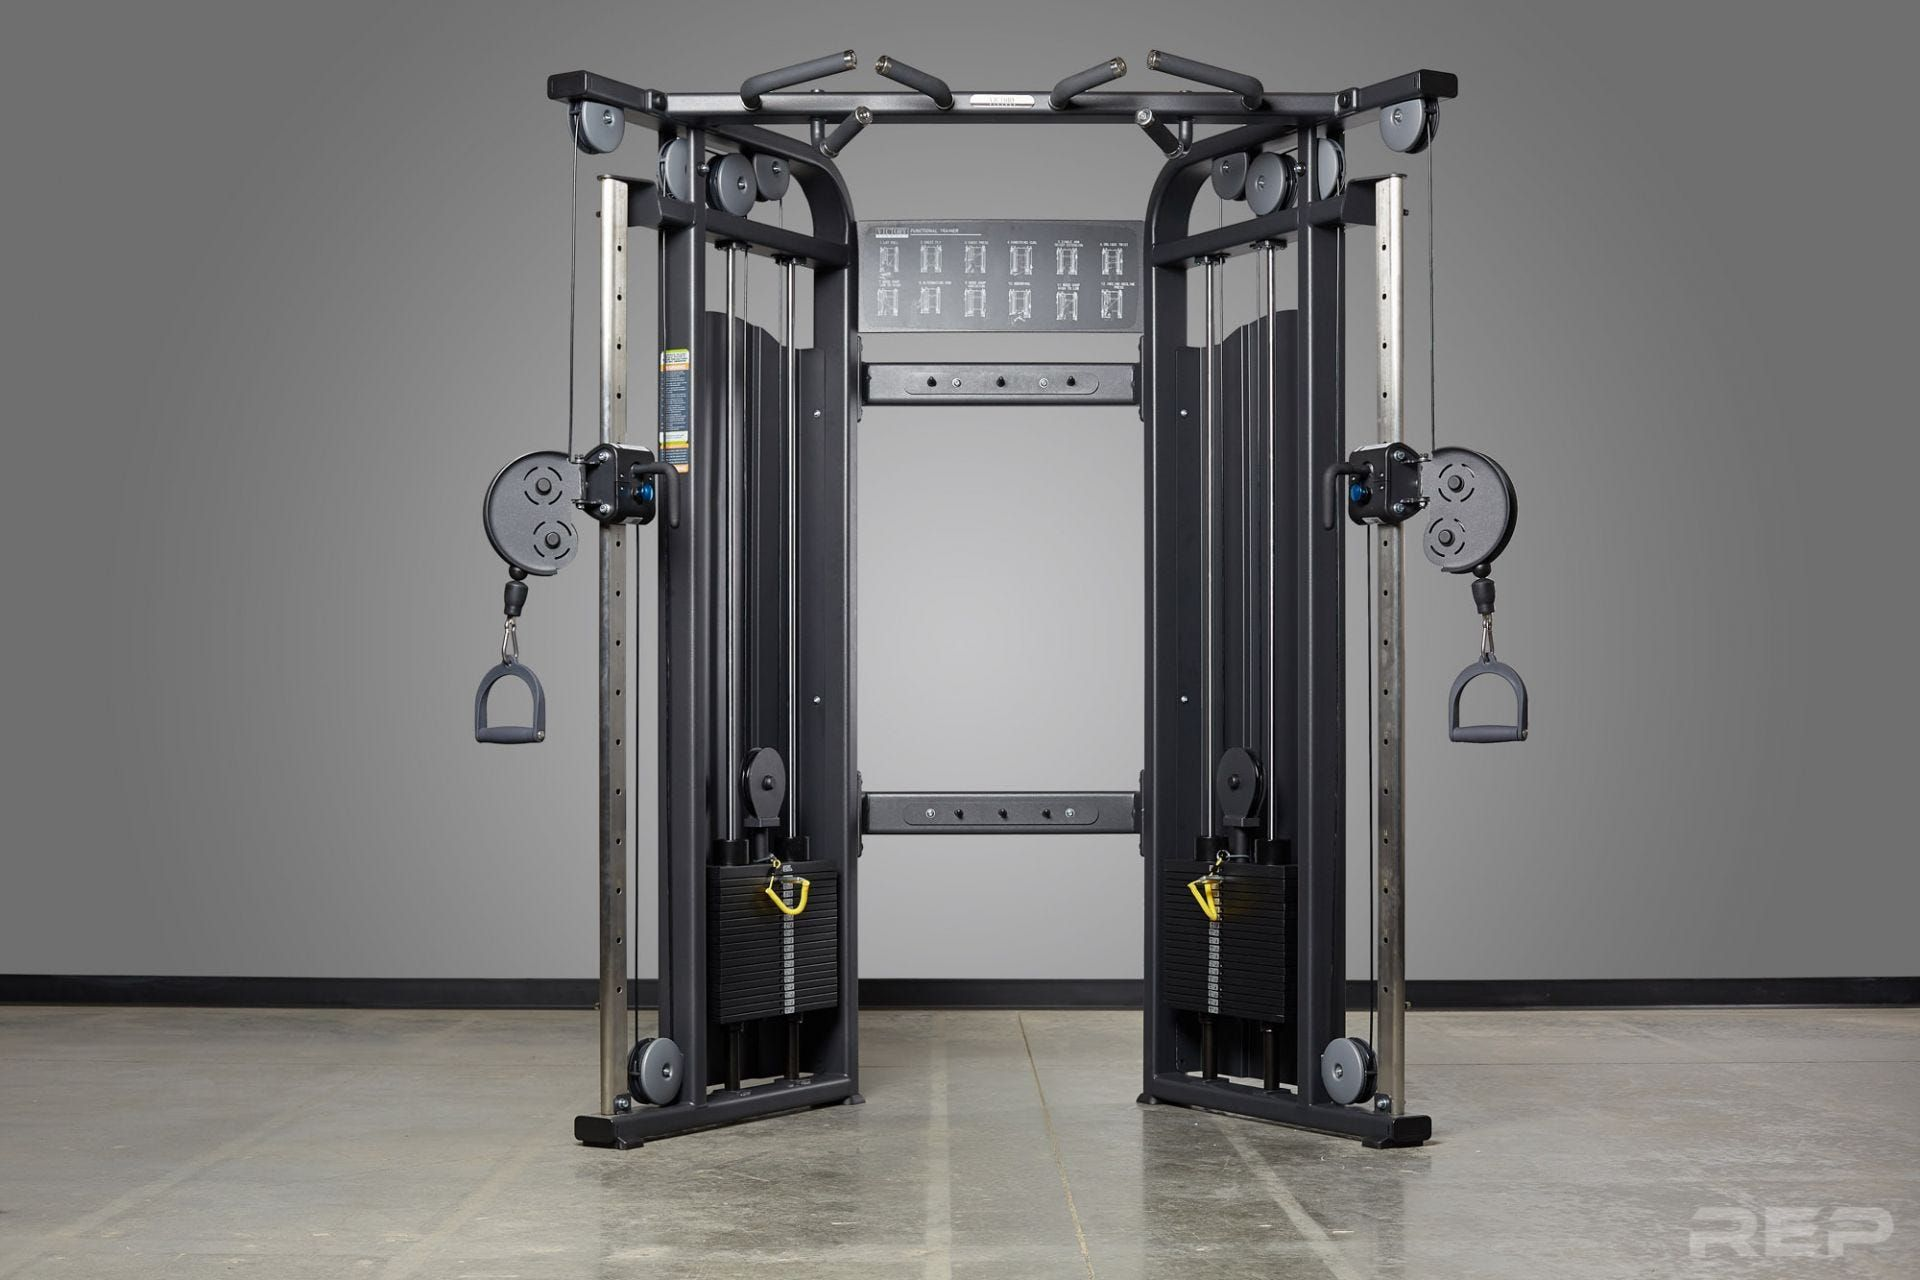 Rep Ft 5000 Functional Trainer Cable Machine At Home Gym Home Gym